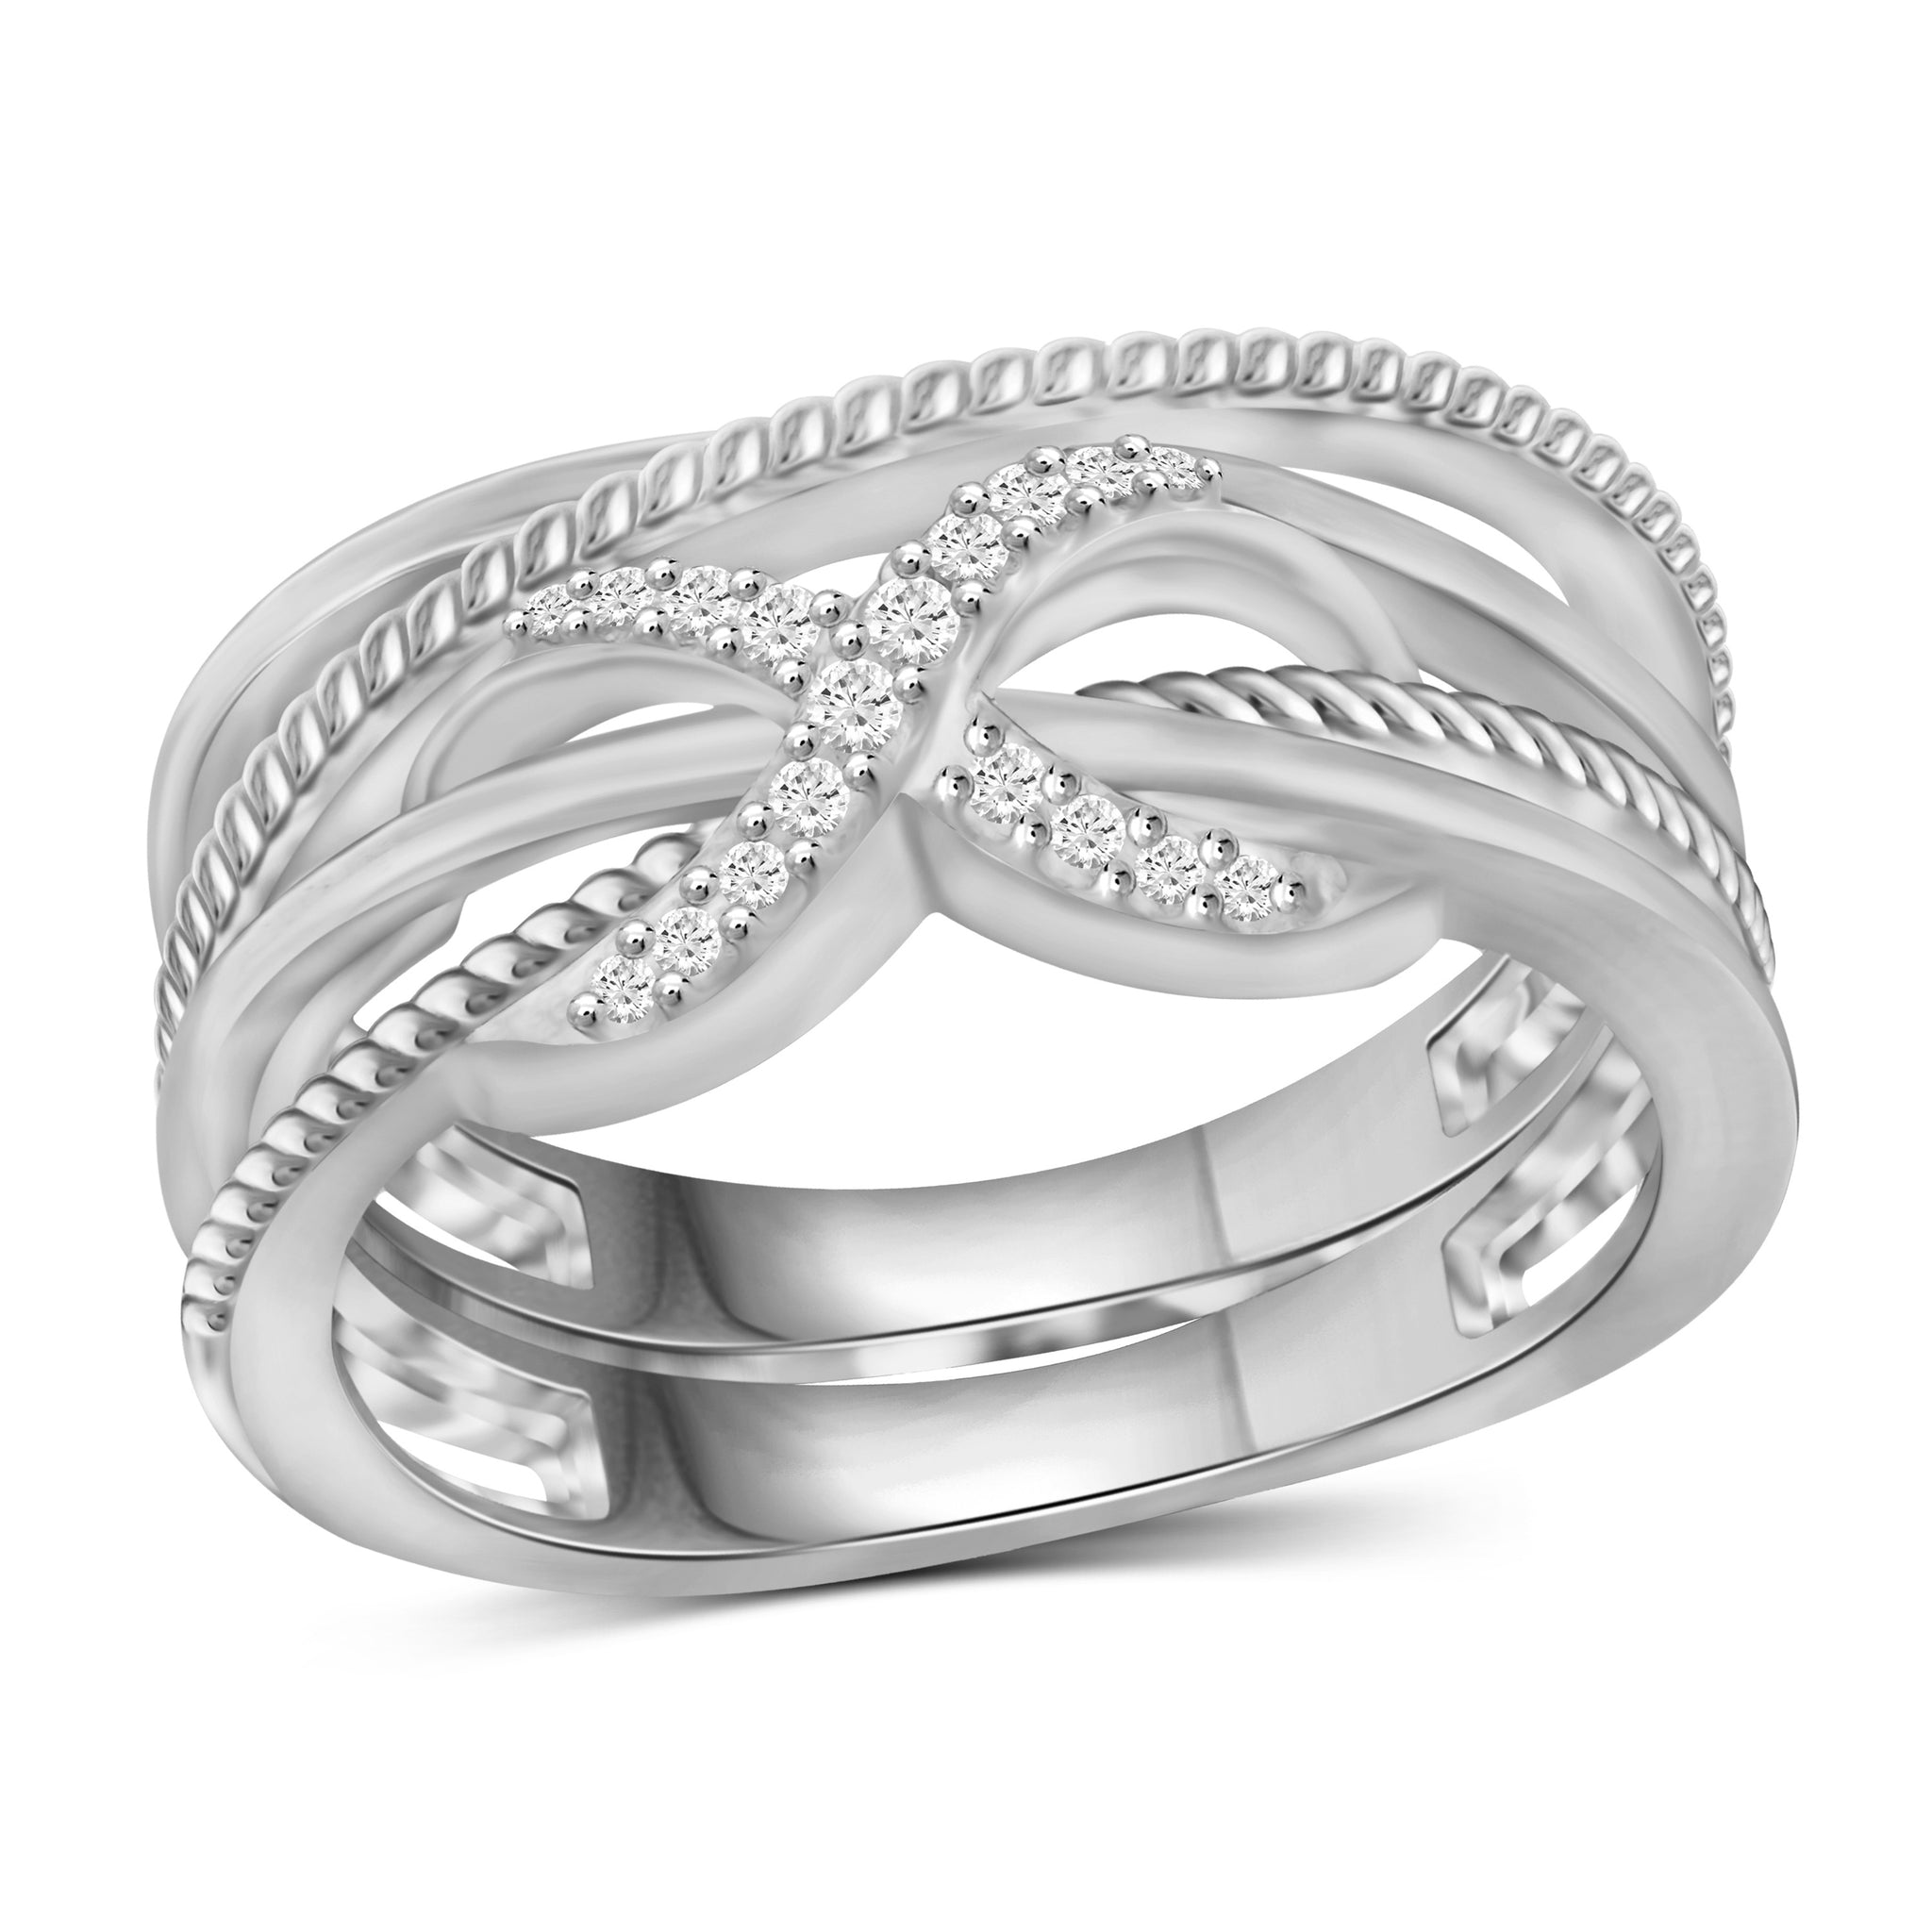 JewelersClub 1/10 Carat T.W. White Diamond Sterling Silver Infinity Stackable Ring - Assorted Colors